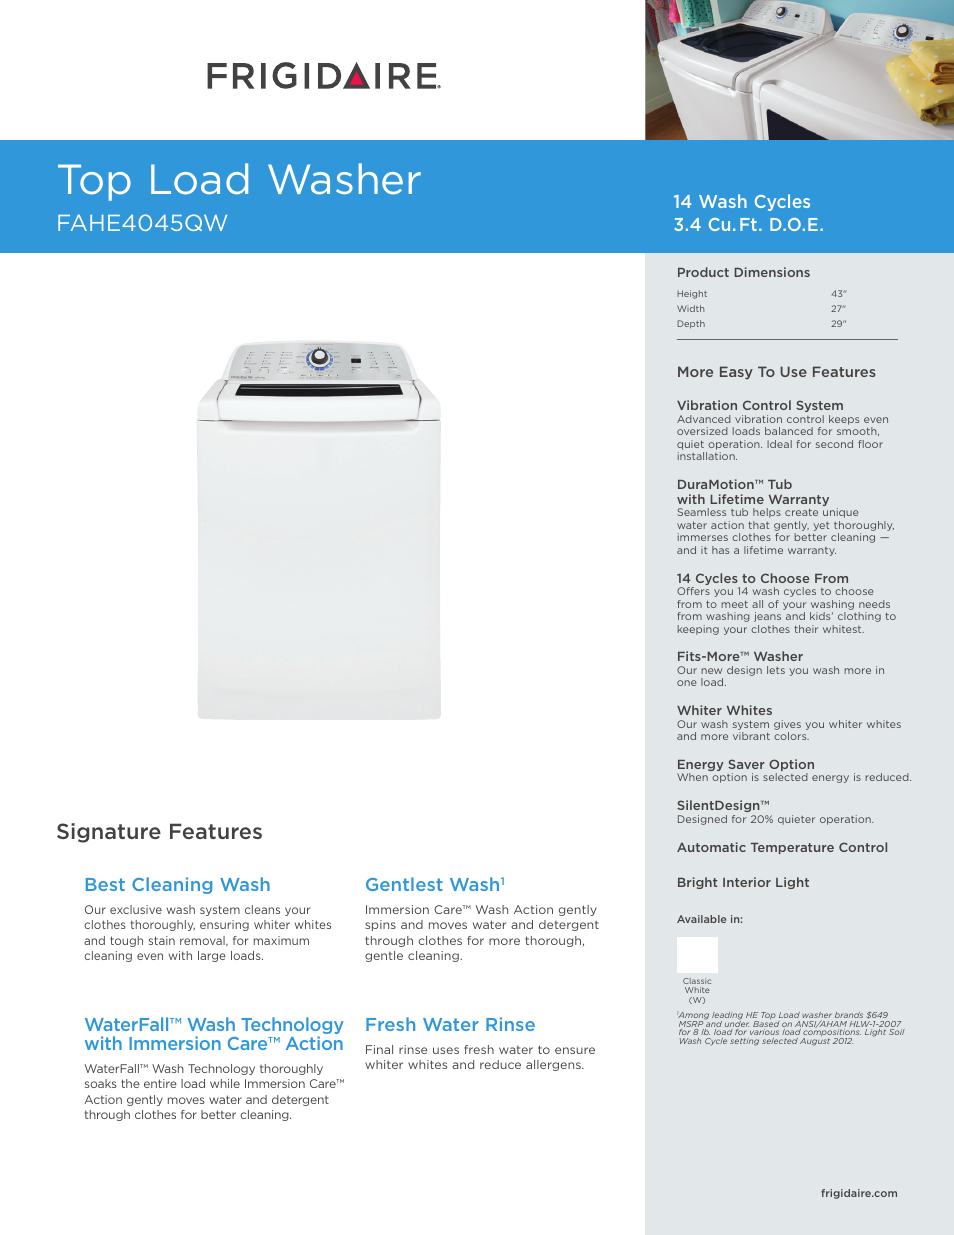 Frigidaire Affinity Washer Fahe4045qw User Manual 2 Pages